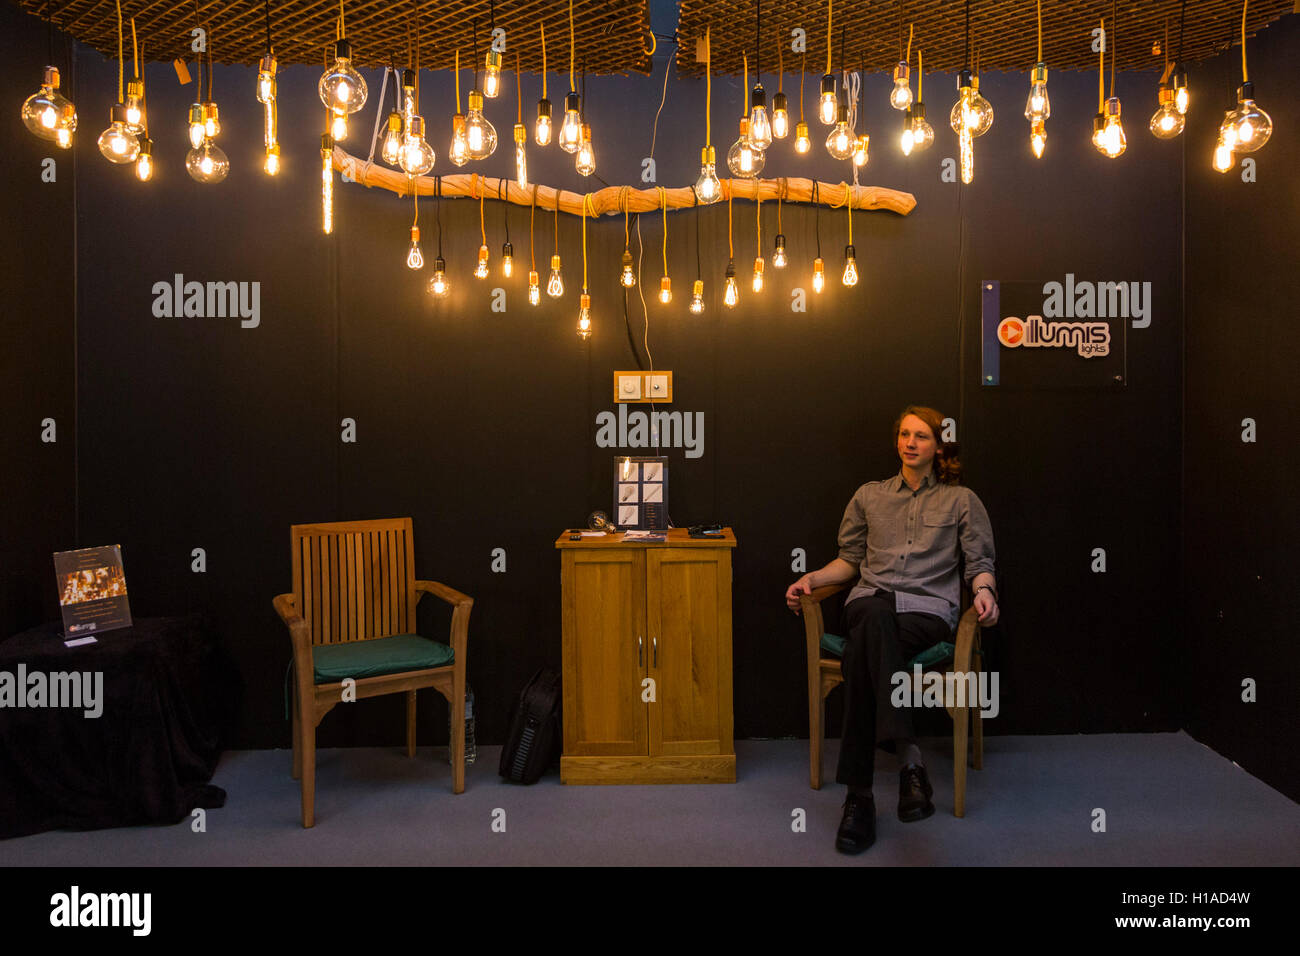 London, UK. 22 September 2016. LED lamps by Illumis Lights. The UK's largest design show 100% Design takes place - Stock Image